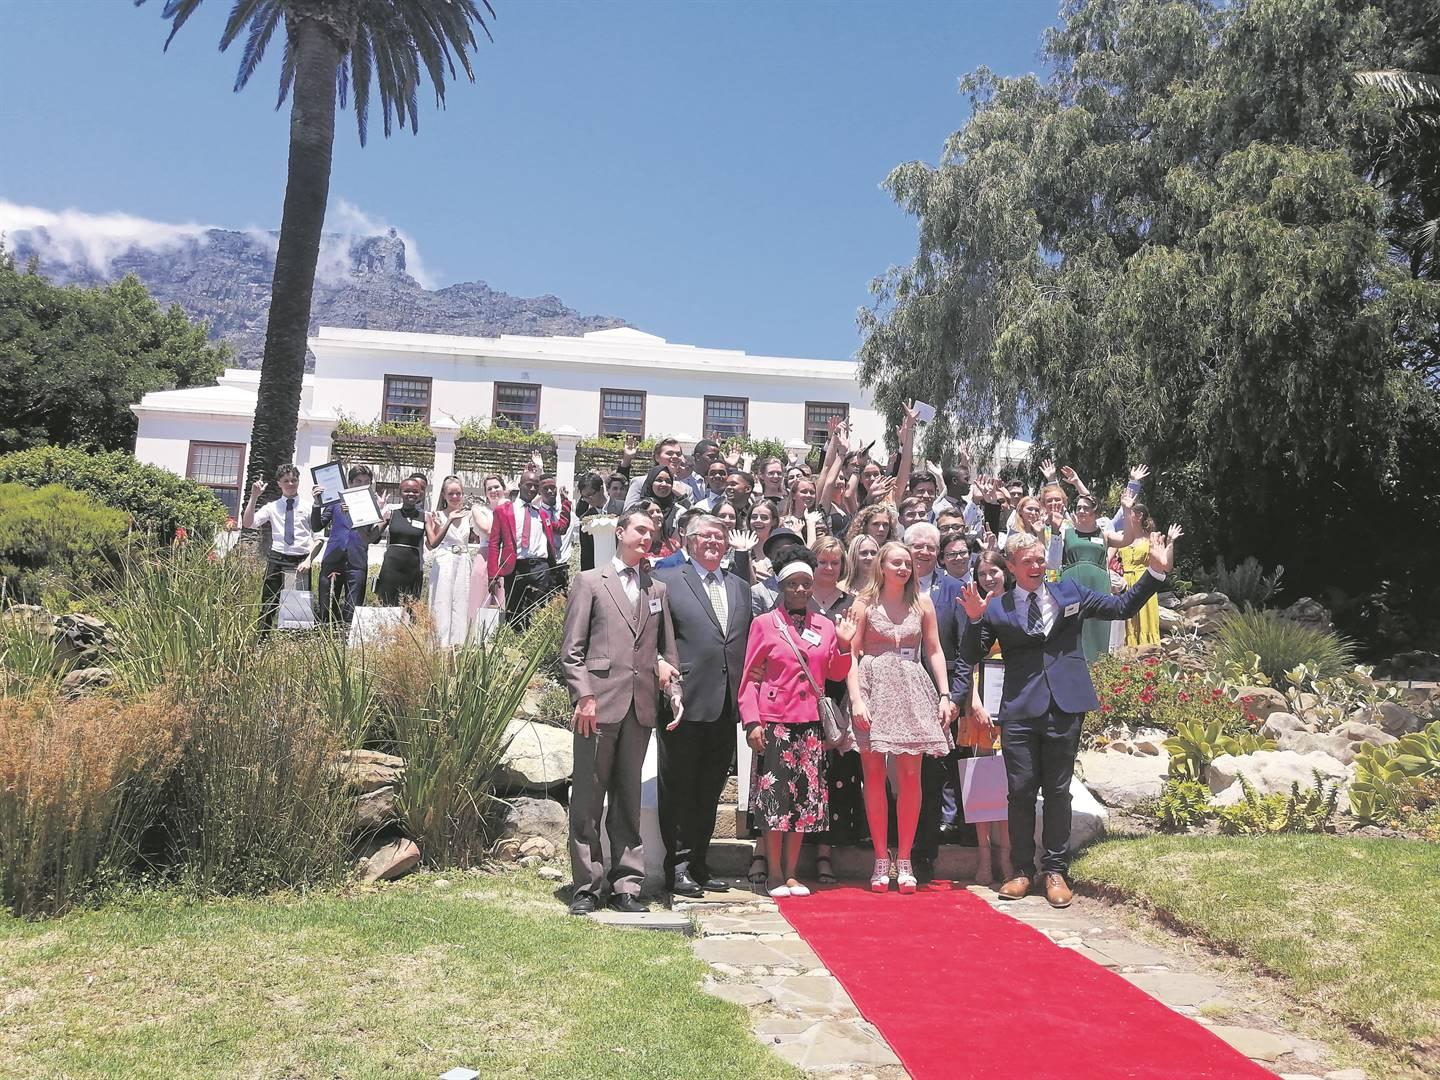 The Western Cape's top achievers in the 2019 National Senior Certificate Examinations on the steps with dignitaries on the steps in front of Leeuwenhof. PHOTO: Nettalie Viljoen